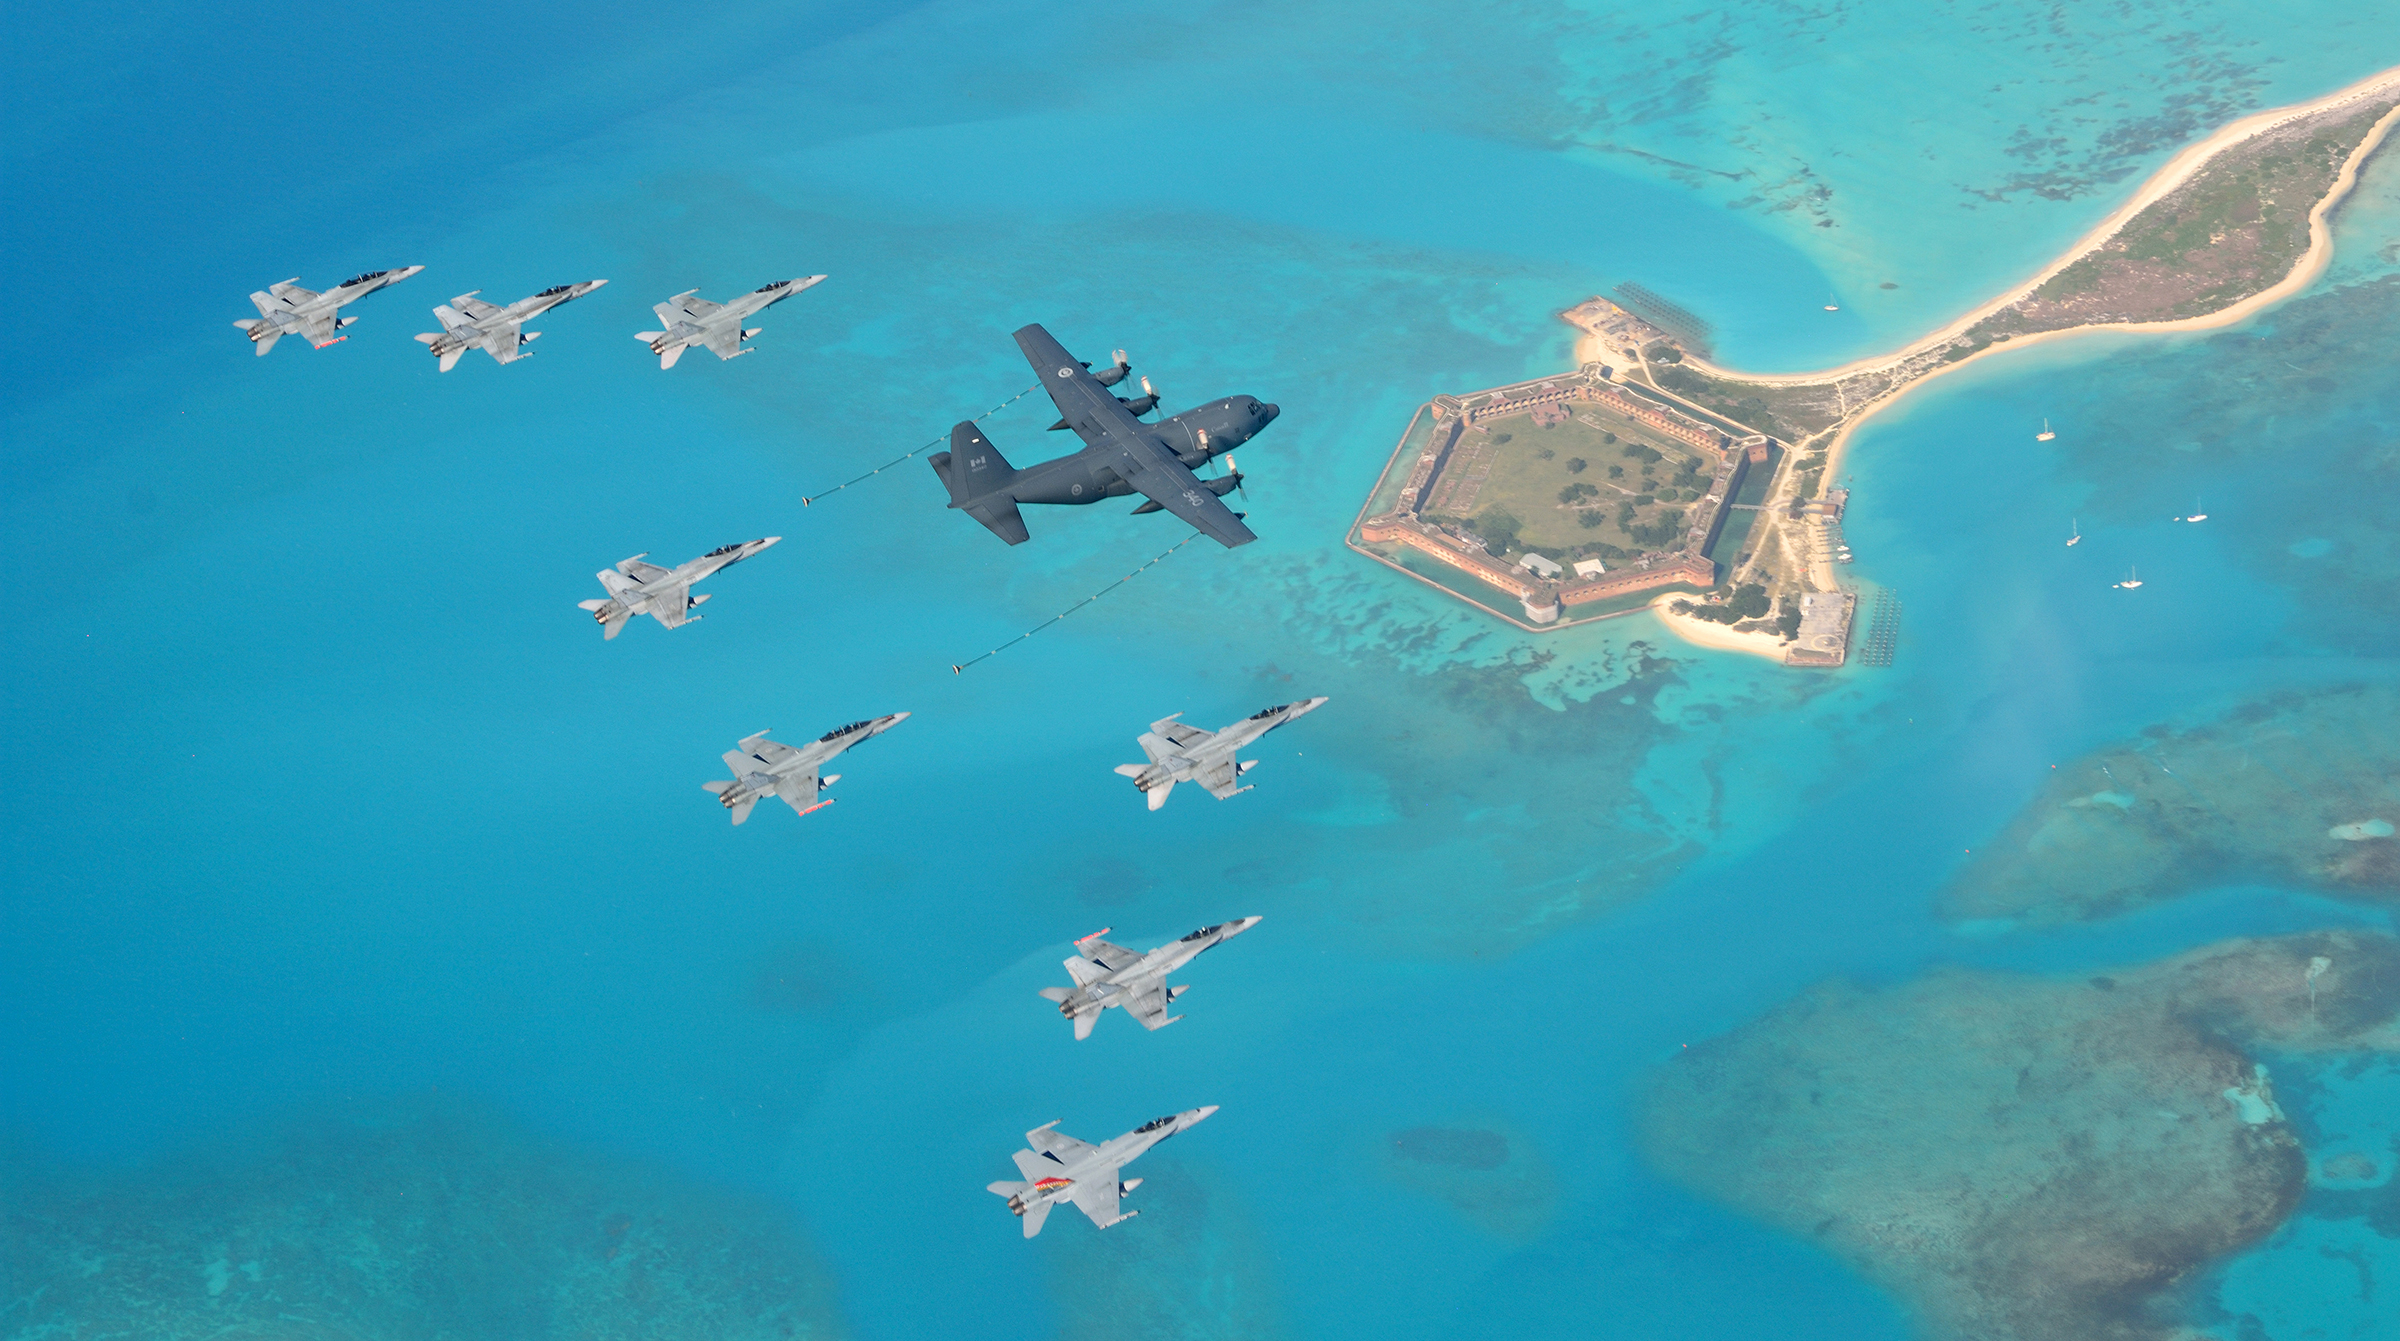 A view from above of a large transport aircraft and eight fighter aircraft flying over an old fort in surrounded by water.